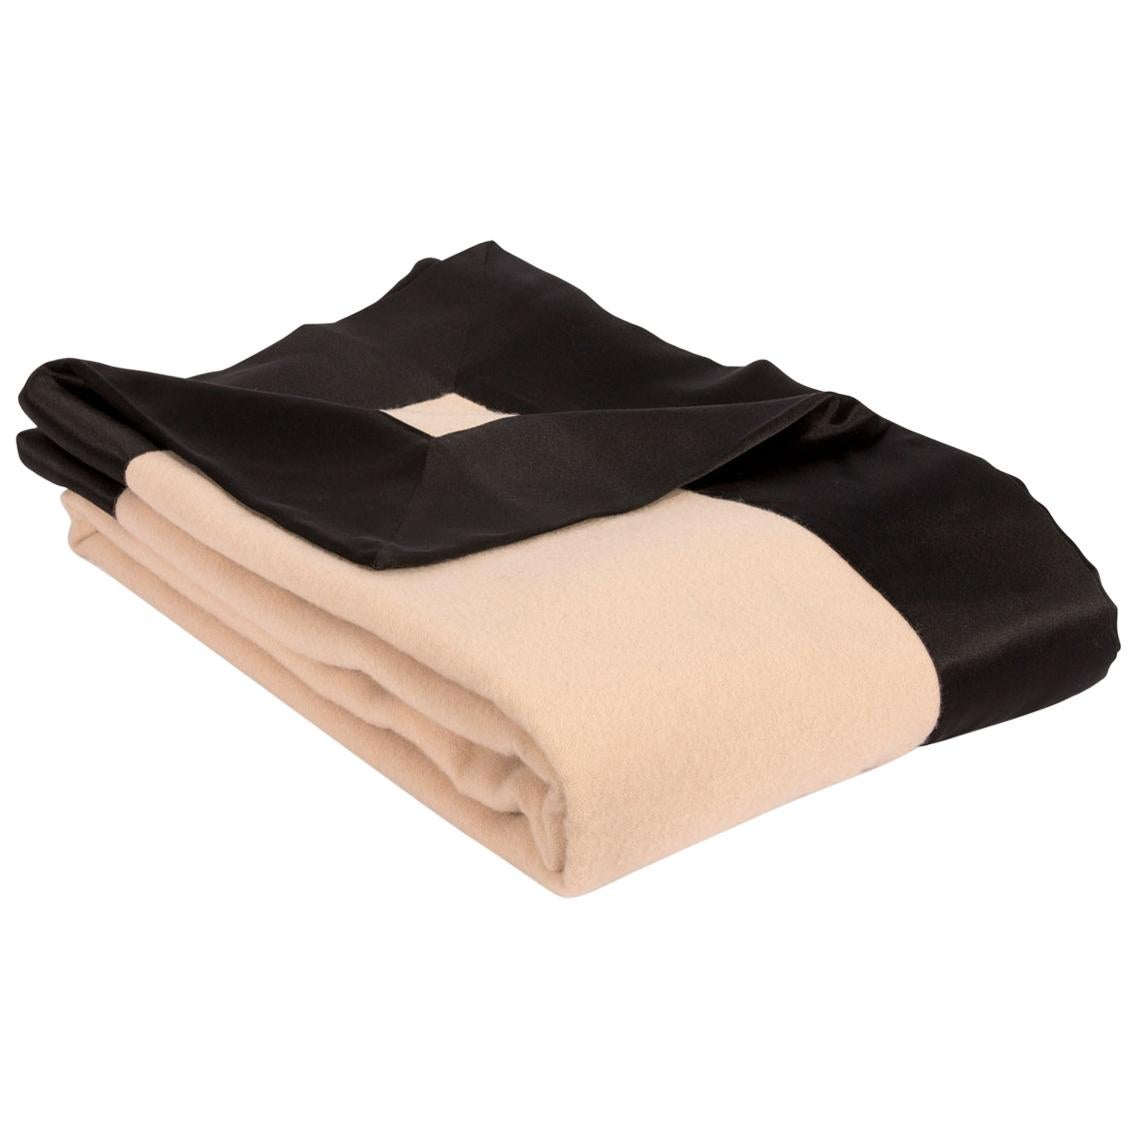 Camille Blanket Cashmere/Wool Black Border in 100% Silk Charmeuse - Queen